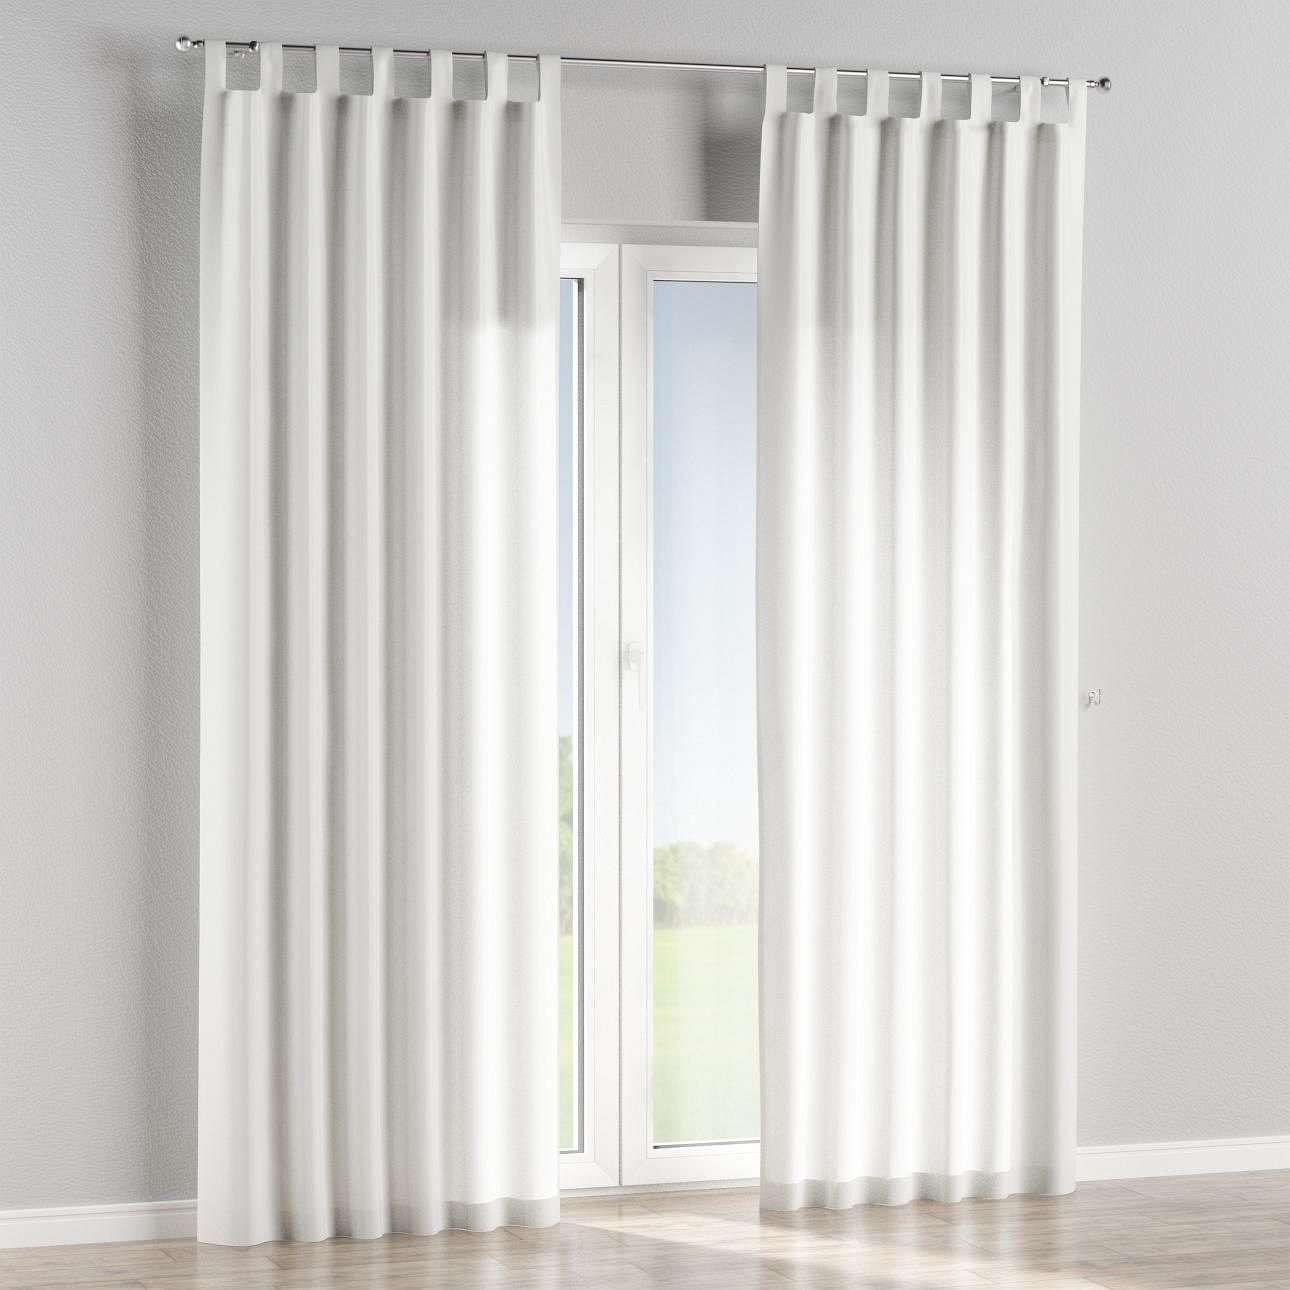 Tab top curtains in collection Mirella, fabric: 143-06